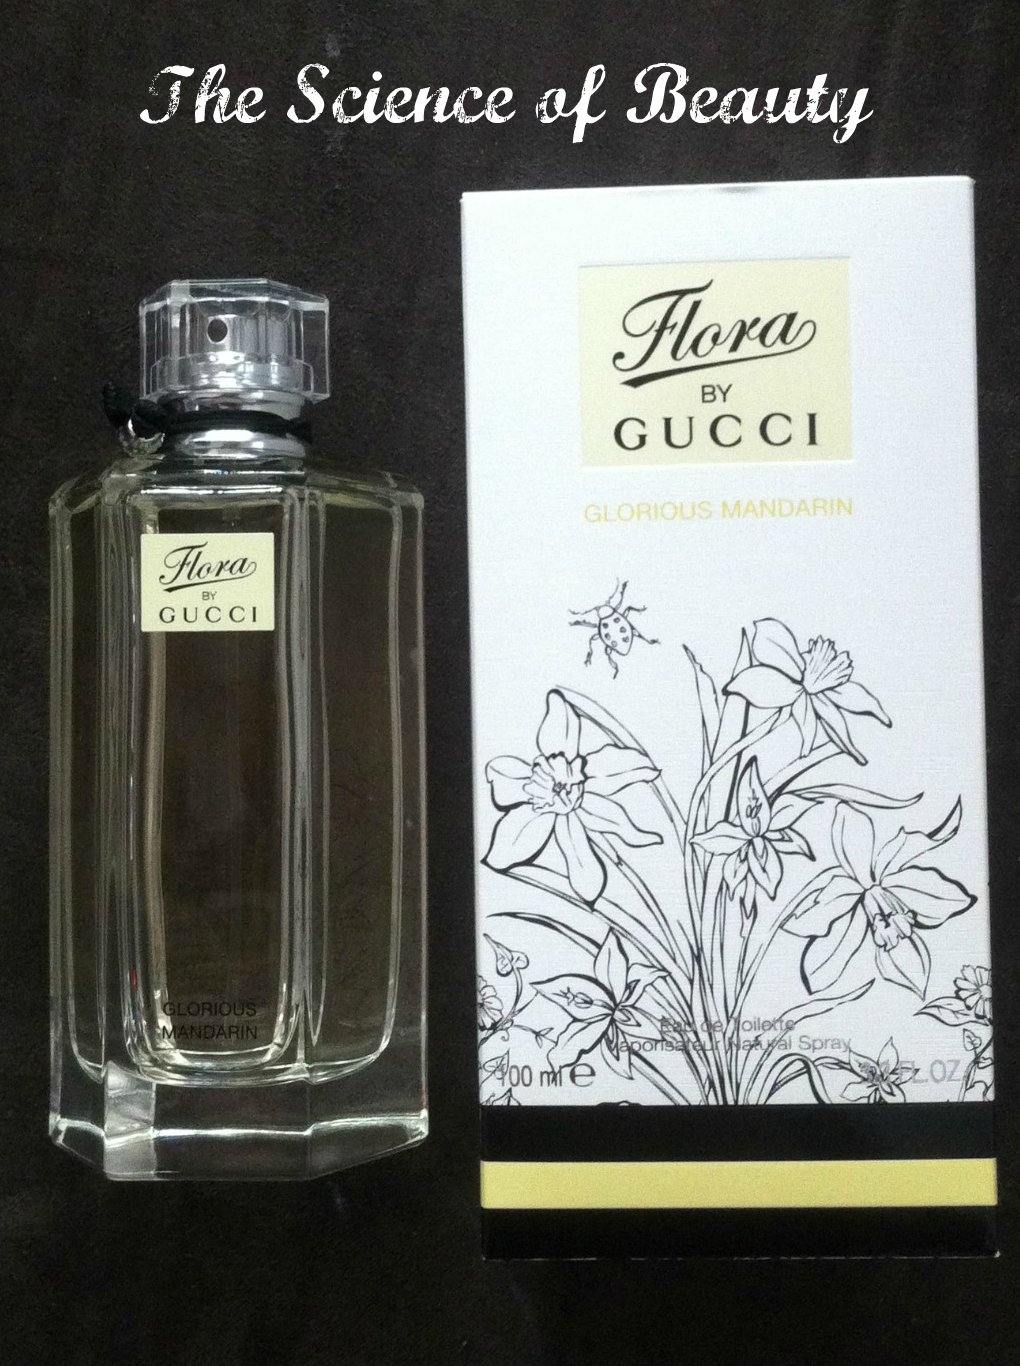 9b539b317d5 Flora by Gucci Glorious Mandarin and Generous Violet were originally only  released for purchase from Gucci boutiques but have since been released for  sale ...